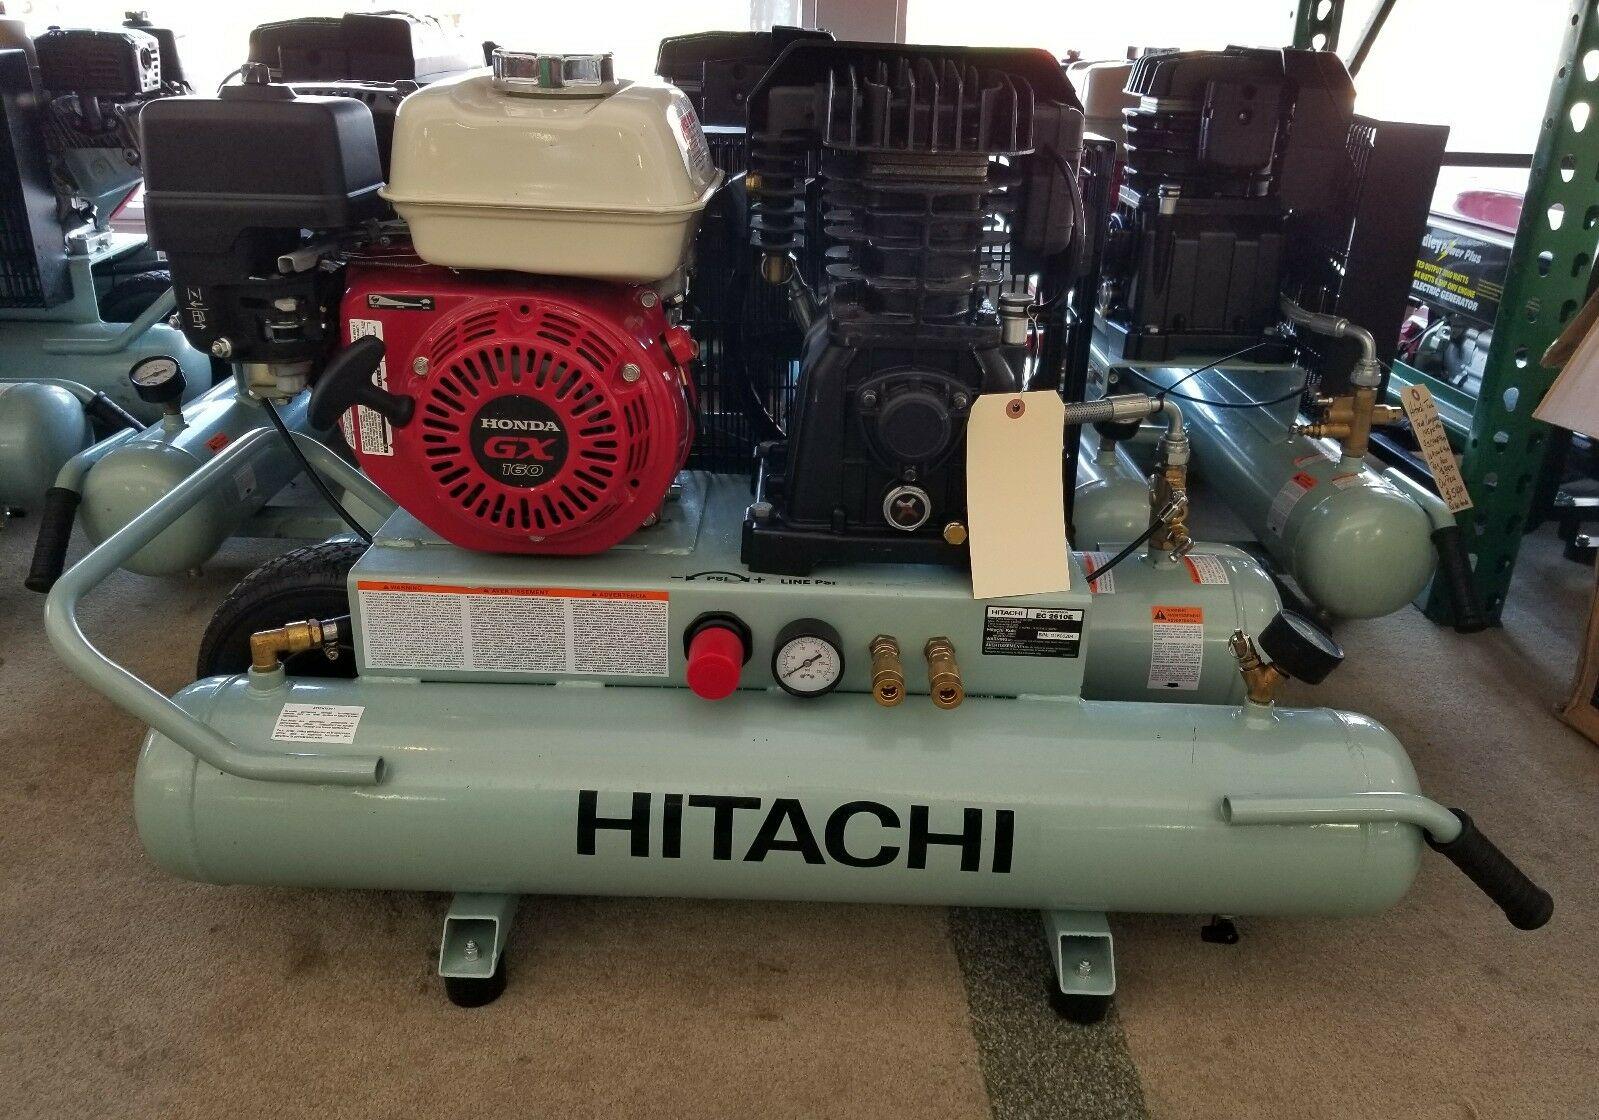 Hitachi Twin Tank Gas Portable Air Compressor with Honda GX160 Engine 8 Gallon. Available Now for 649.00